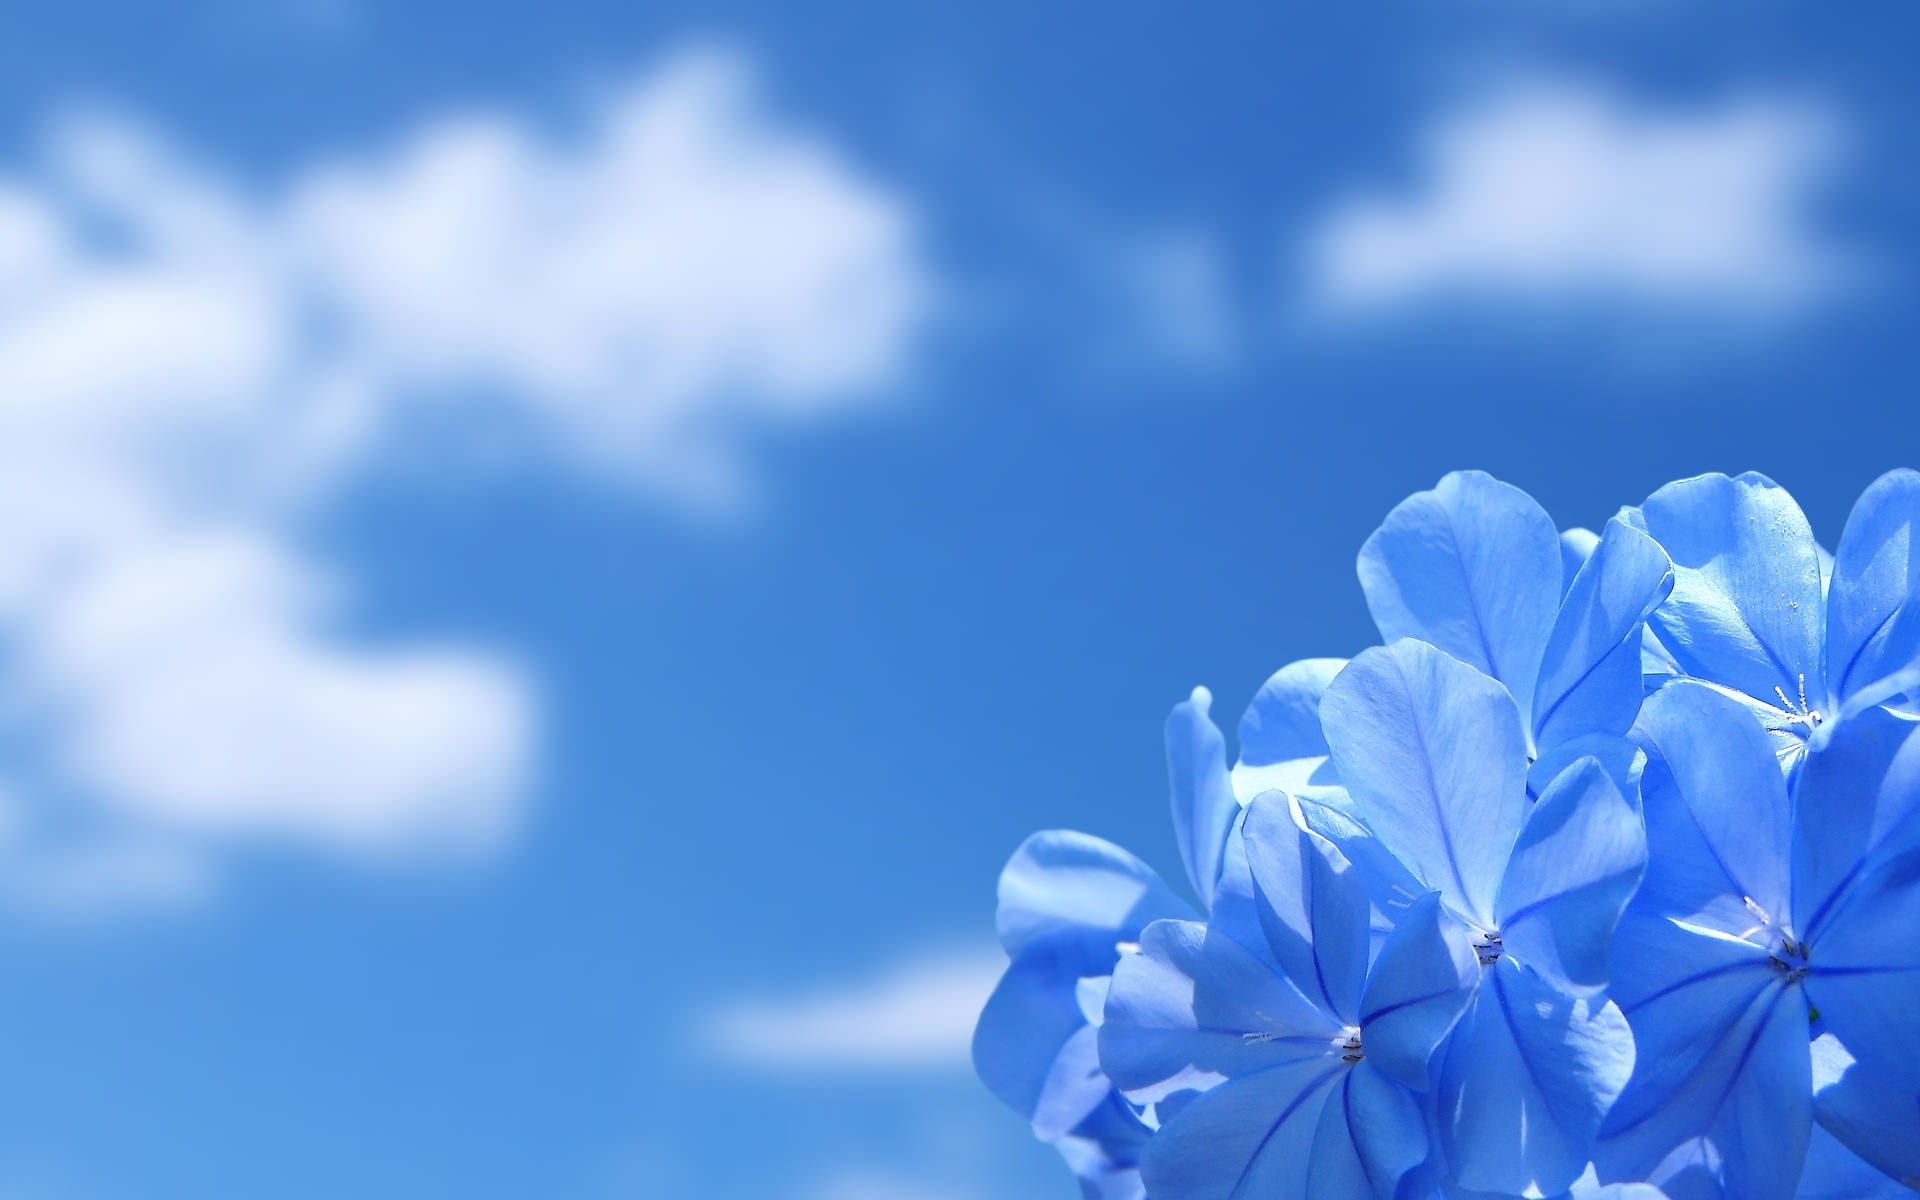 Astonishing Blue Flower Background